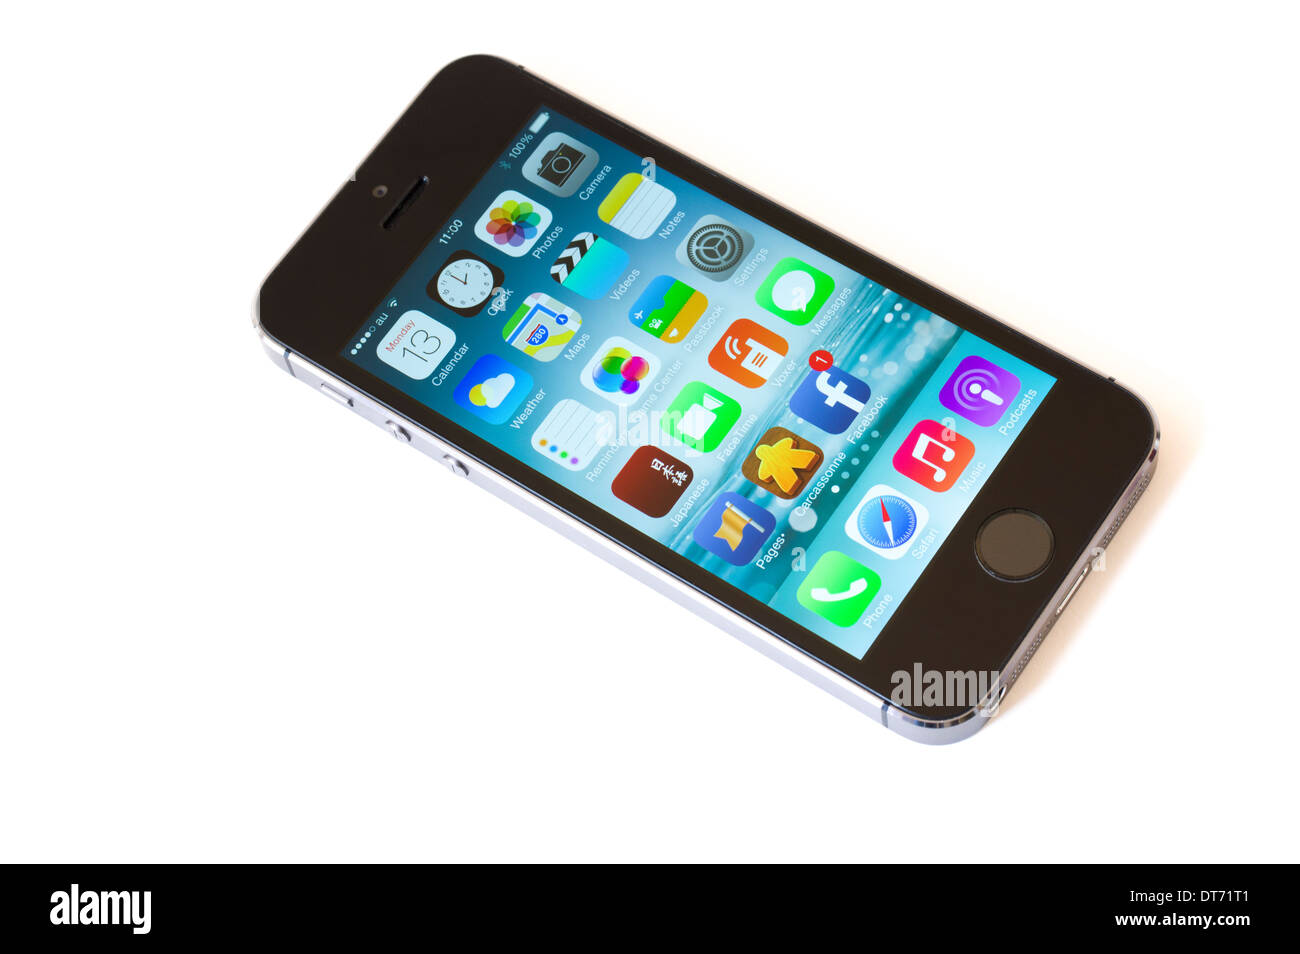 Apple iPhone 5s smart phone designed by Jonathan Ive, includes fingerprint recognition to unlock - Stock Image